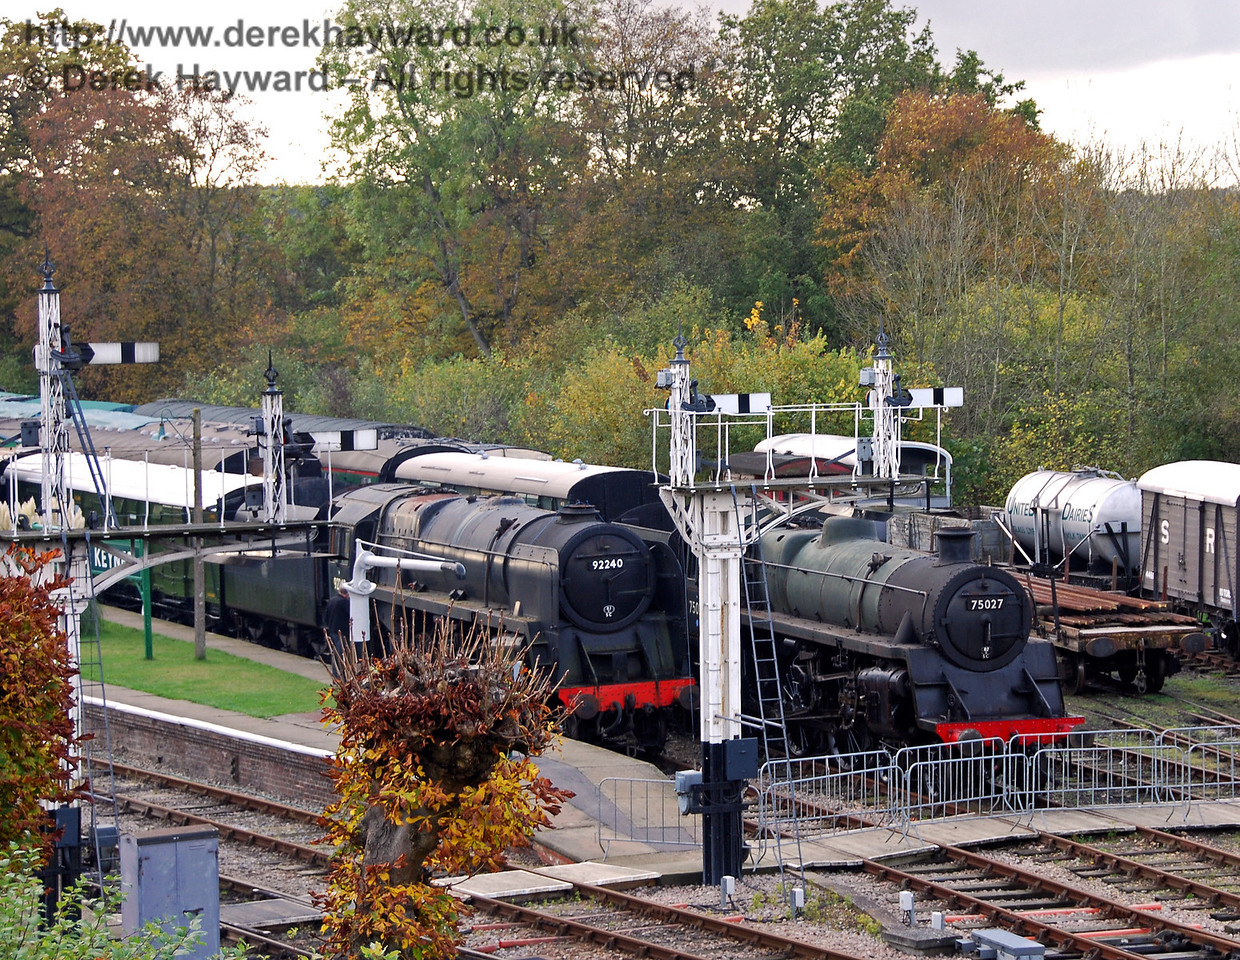 75027 and 92240 on display at Horsted Keynes before work started to repaint both engines. 23.10.2009